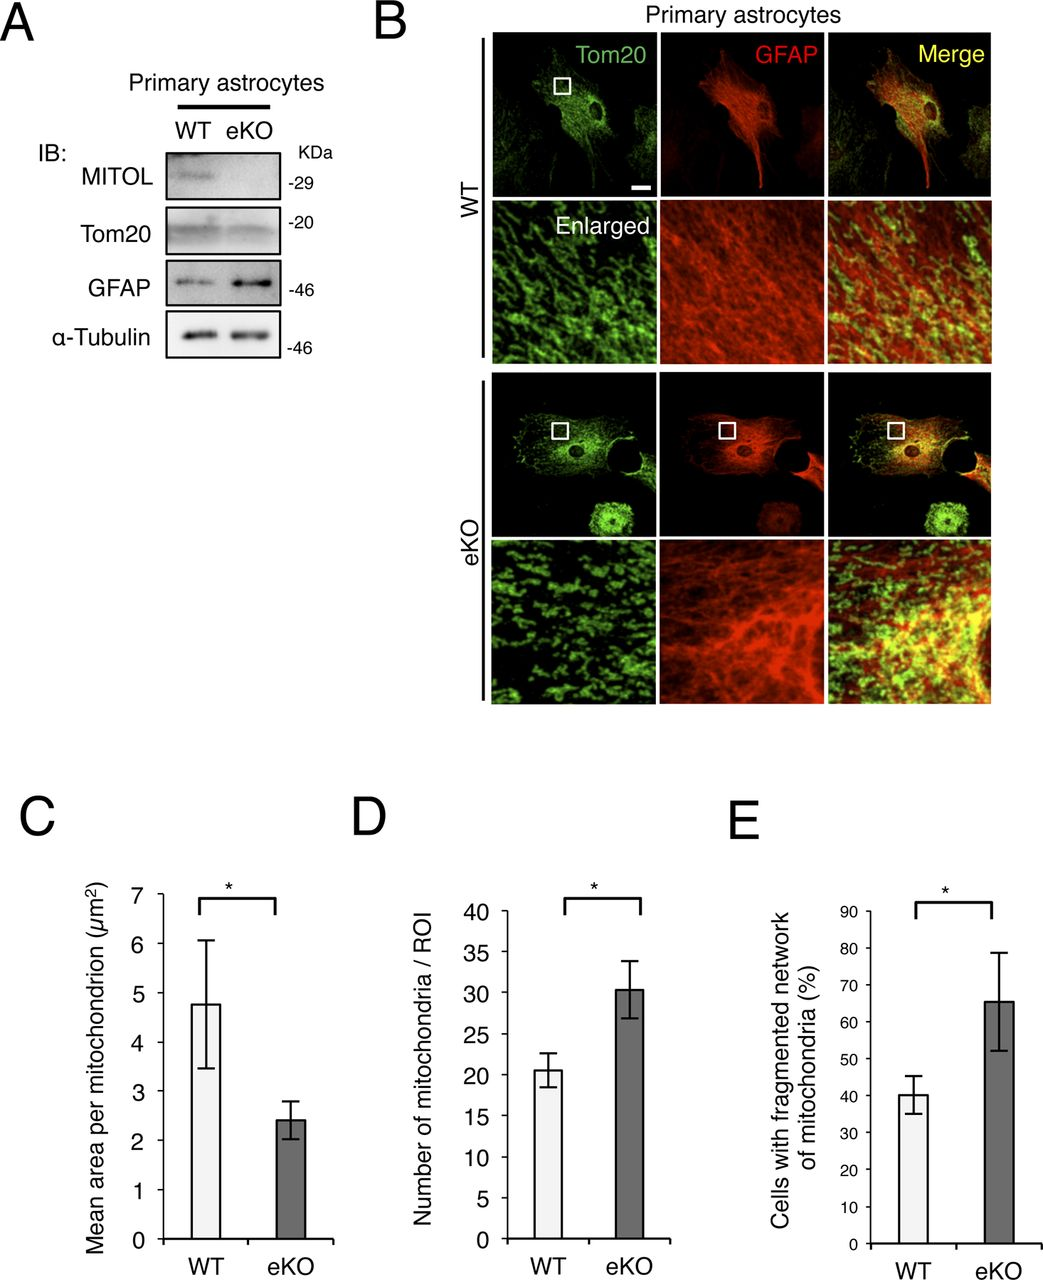 Mitol Deletion In The Brain Impairs Mitochondrial Structure